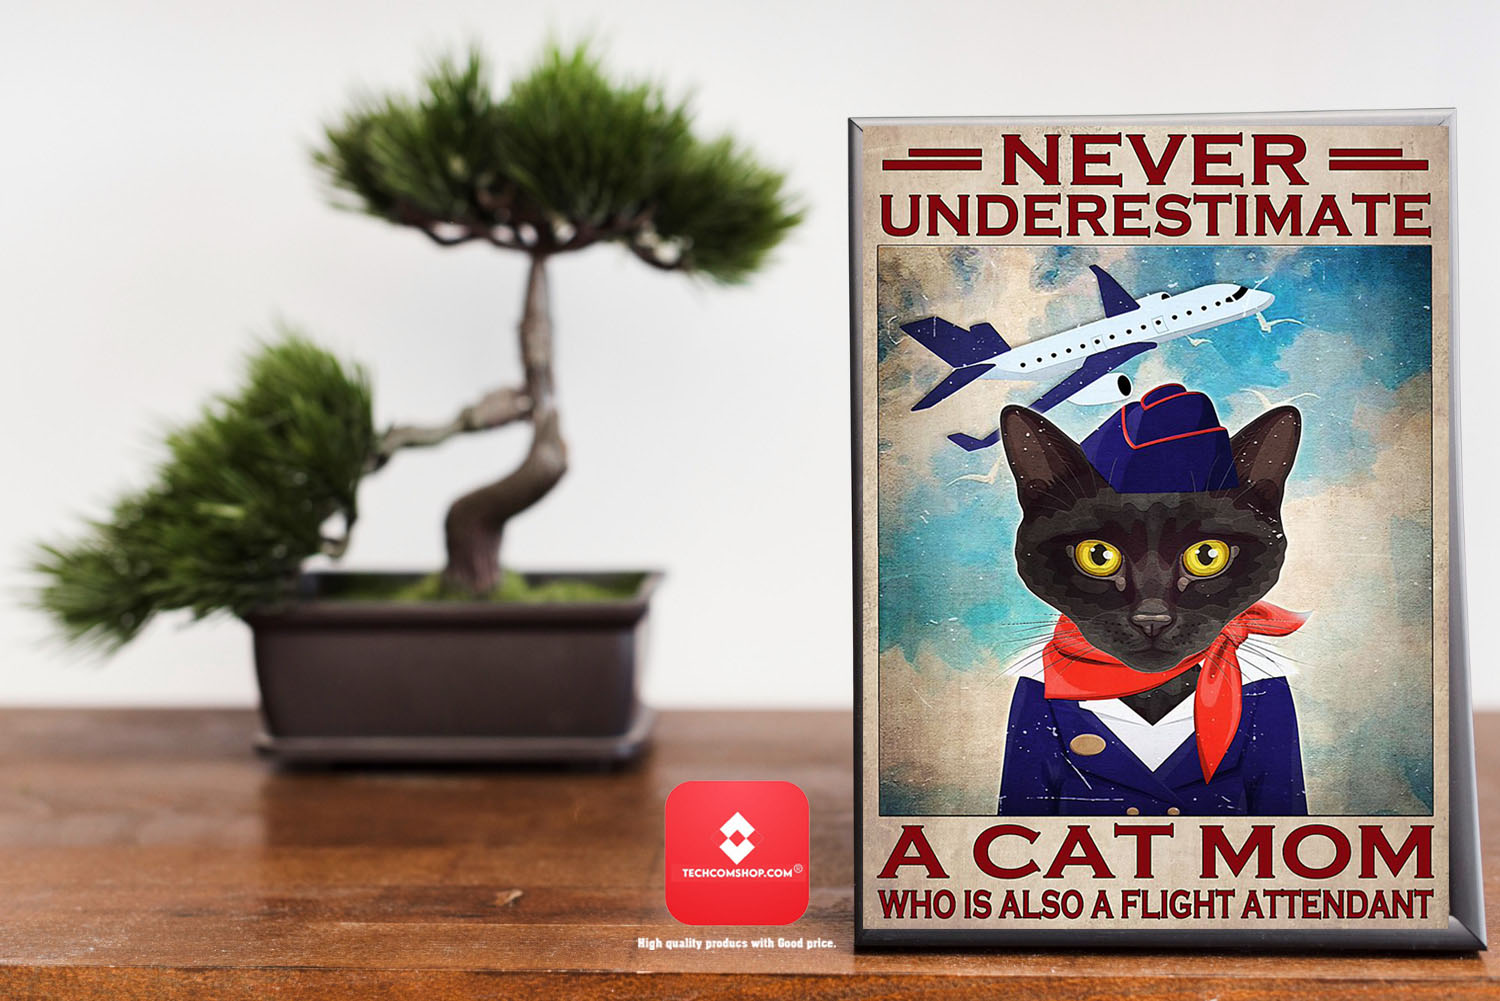 Never underestimate a cat mom who is also a flight attendant poster 9